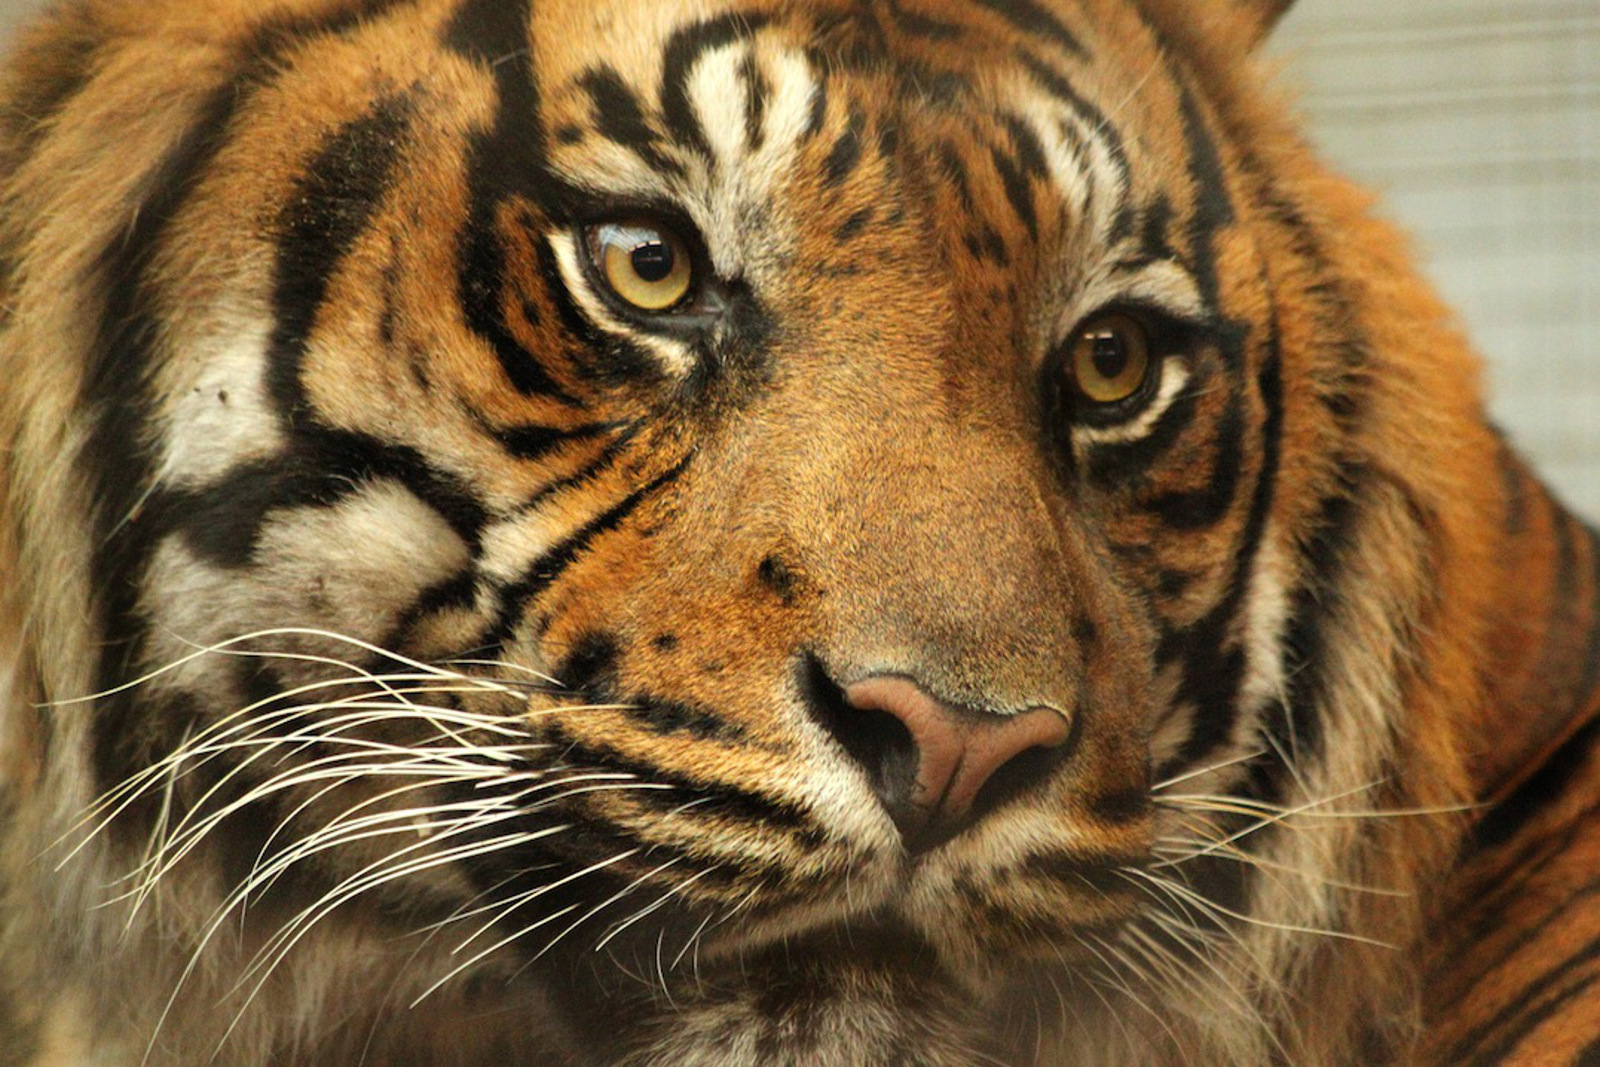 Tigers in Captivity: A Desperate Solution?